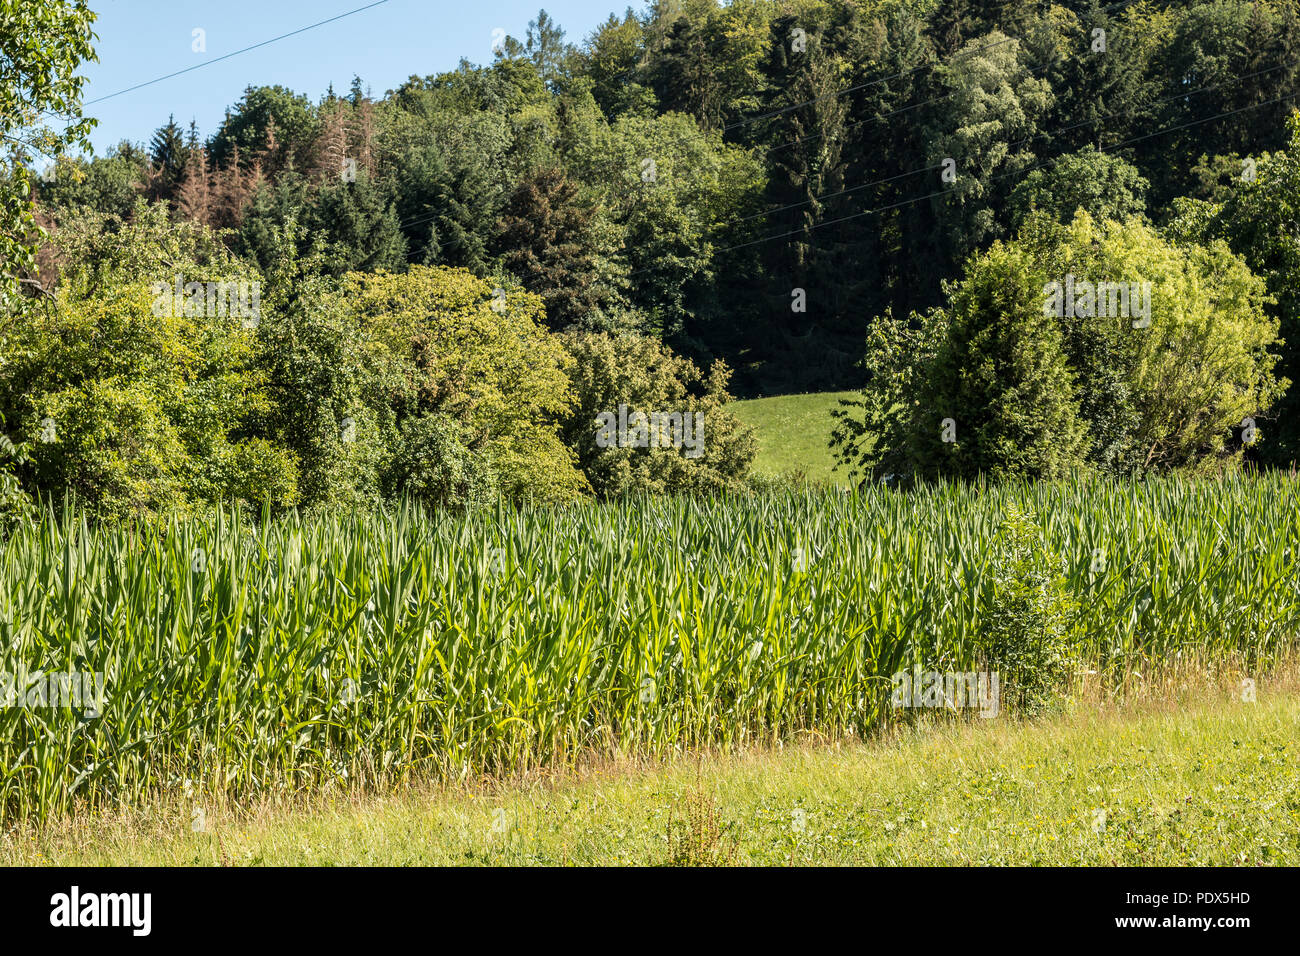 German corn field near the forest - Stock Image